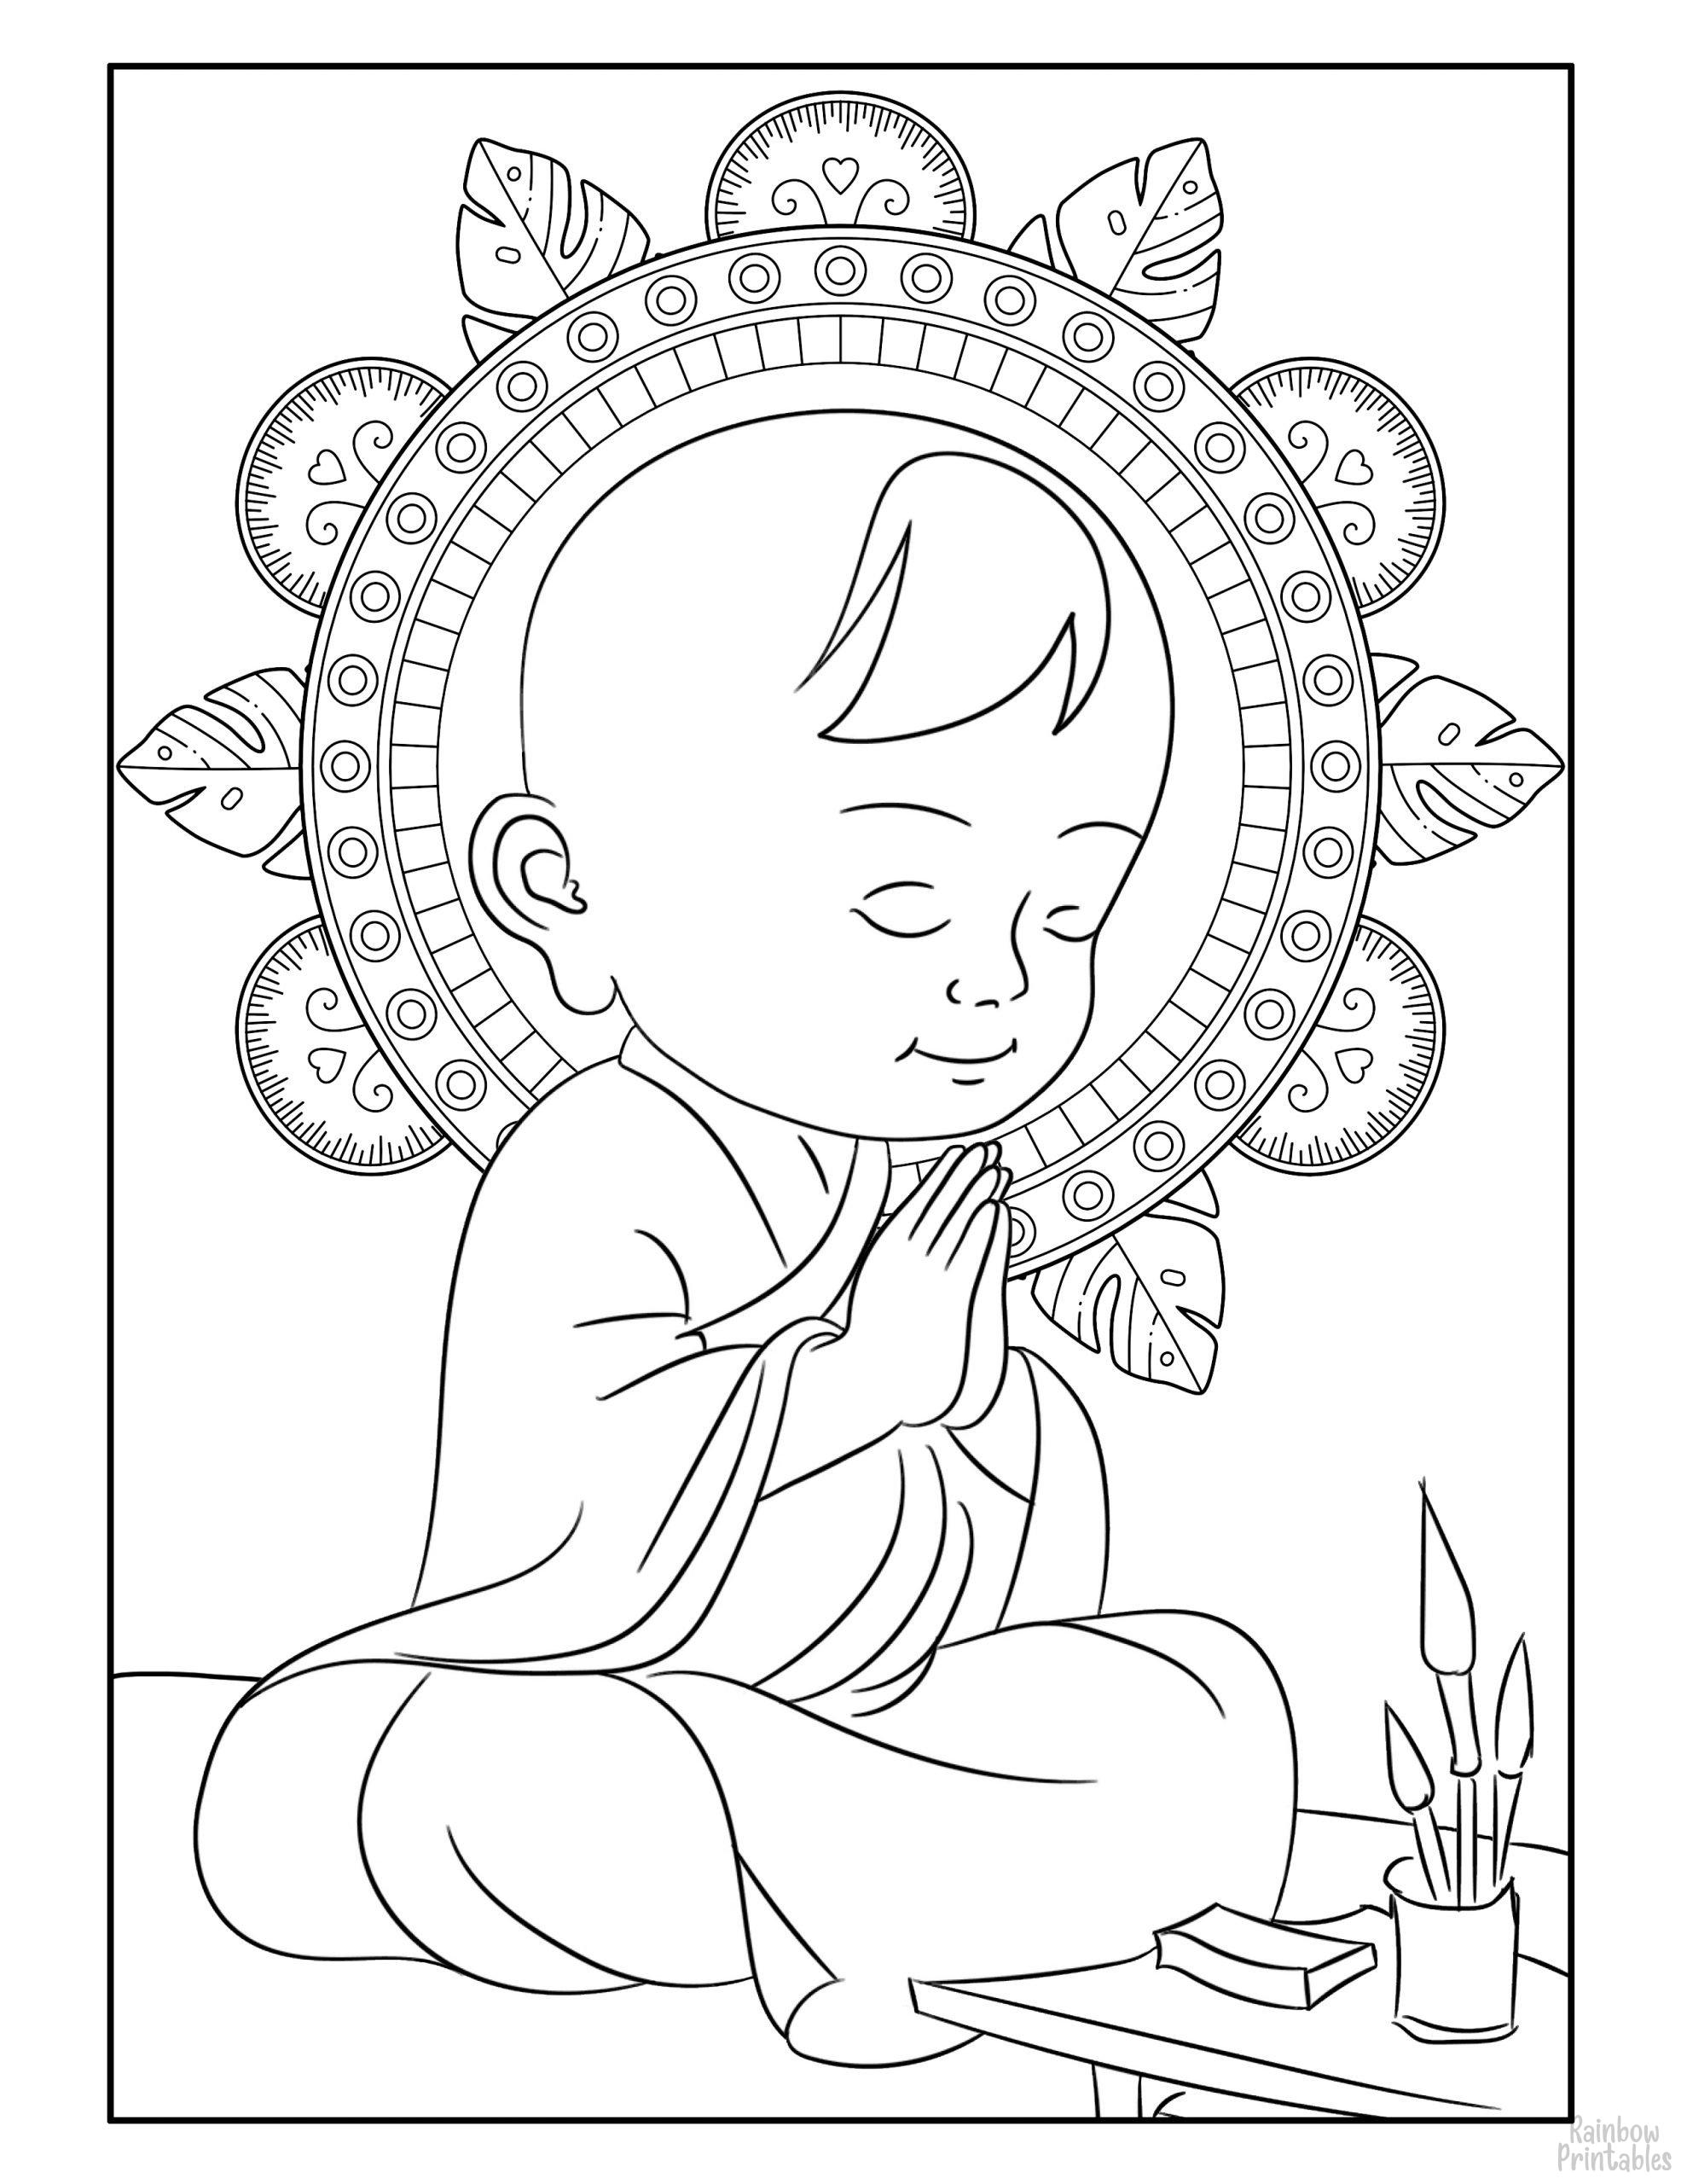 BUDDHIST LITTLE MONK BOY ASIAN Coloring Pages for Kids Adults Art Activities Line Art